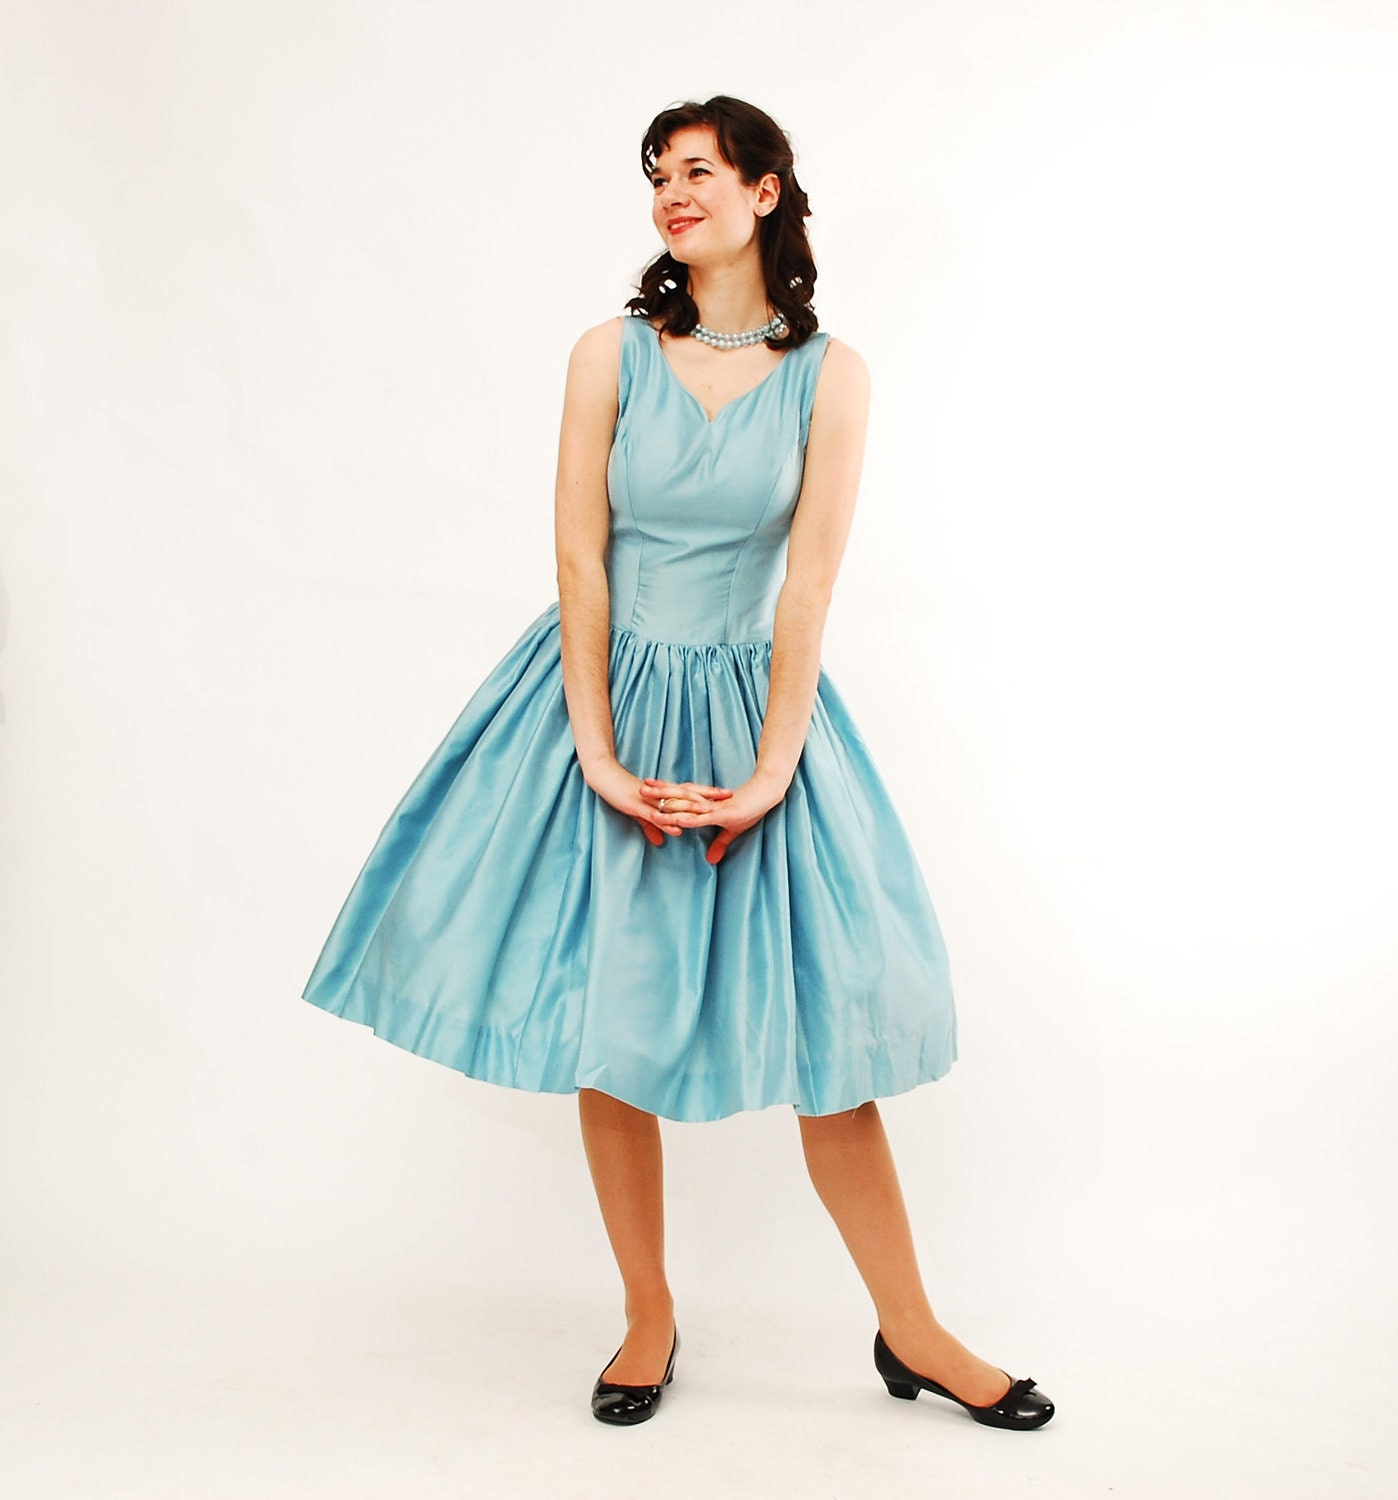 1950s bridesmaid dresses for sale bridesmaid dresses for 1950s style wedding dresses for sale